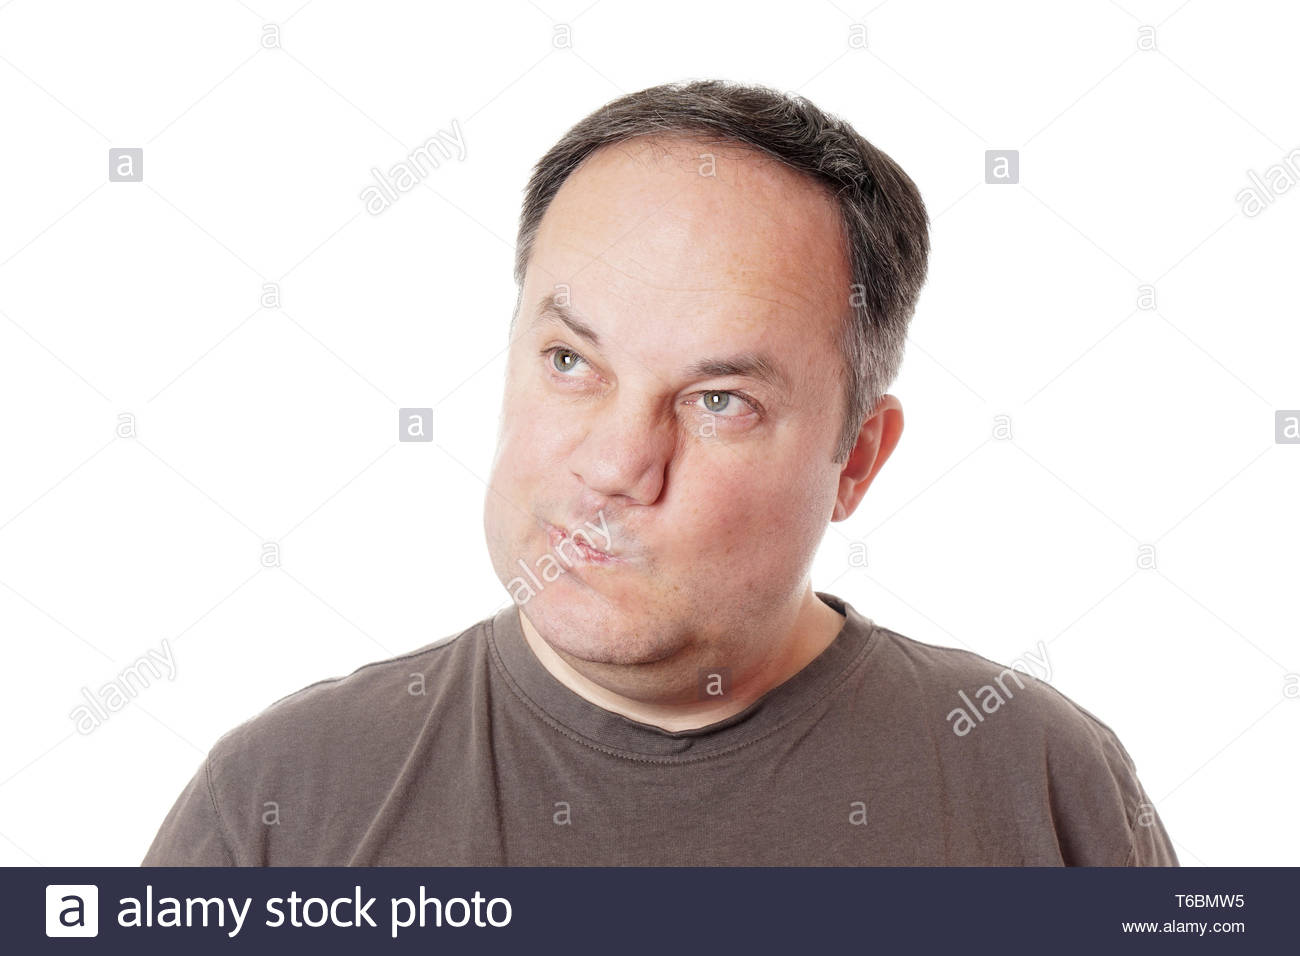 skeptical man twisting his mouth - Stock Image